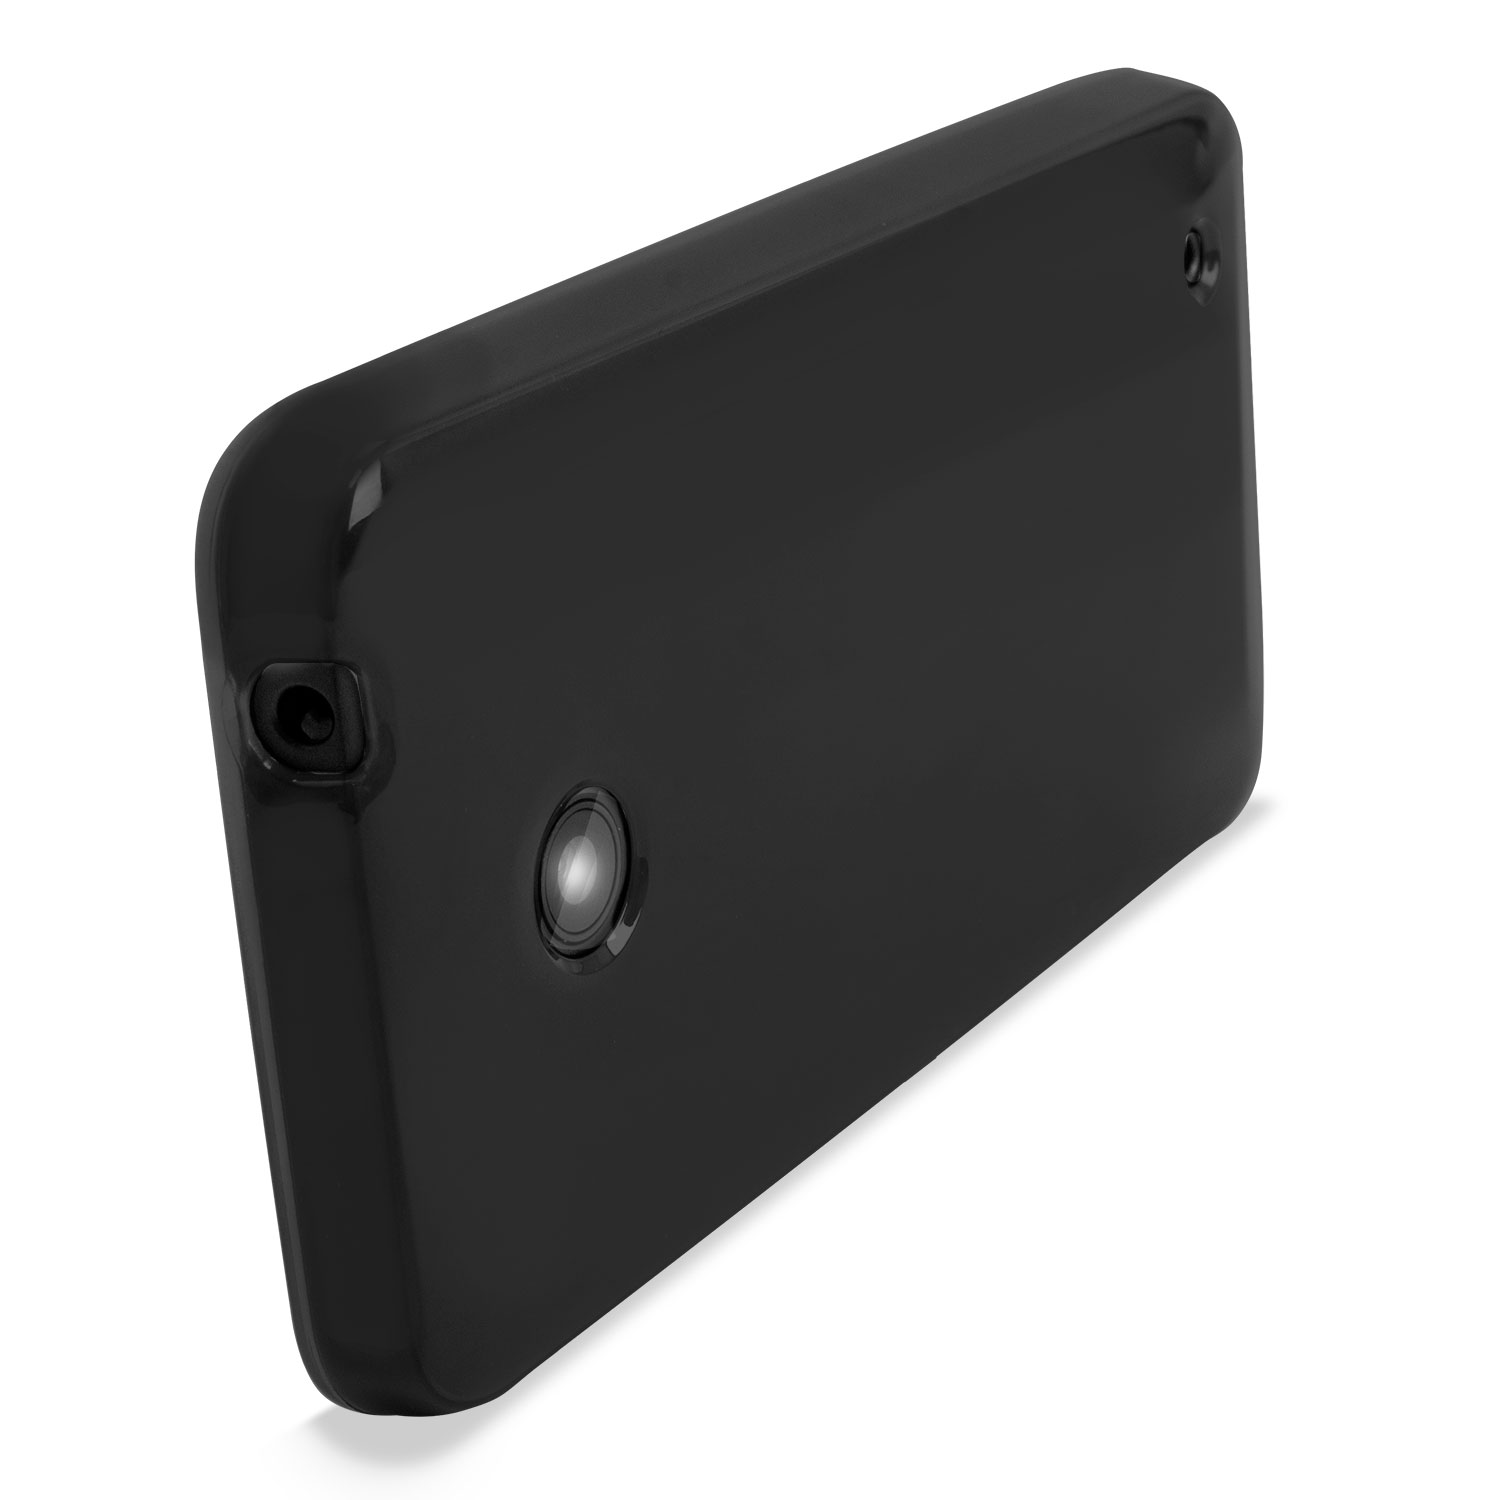 Flexishield Case For Nokia Lumia 635 / 630 - Black